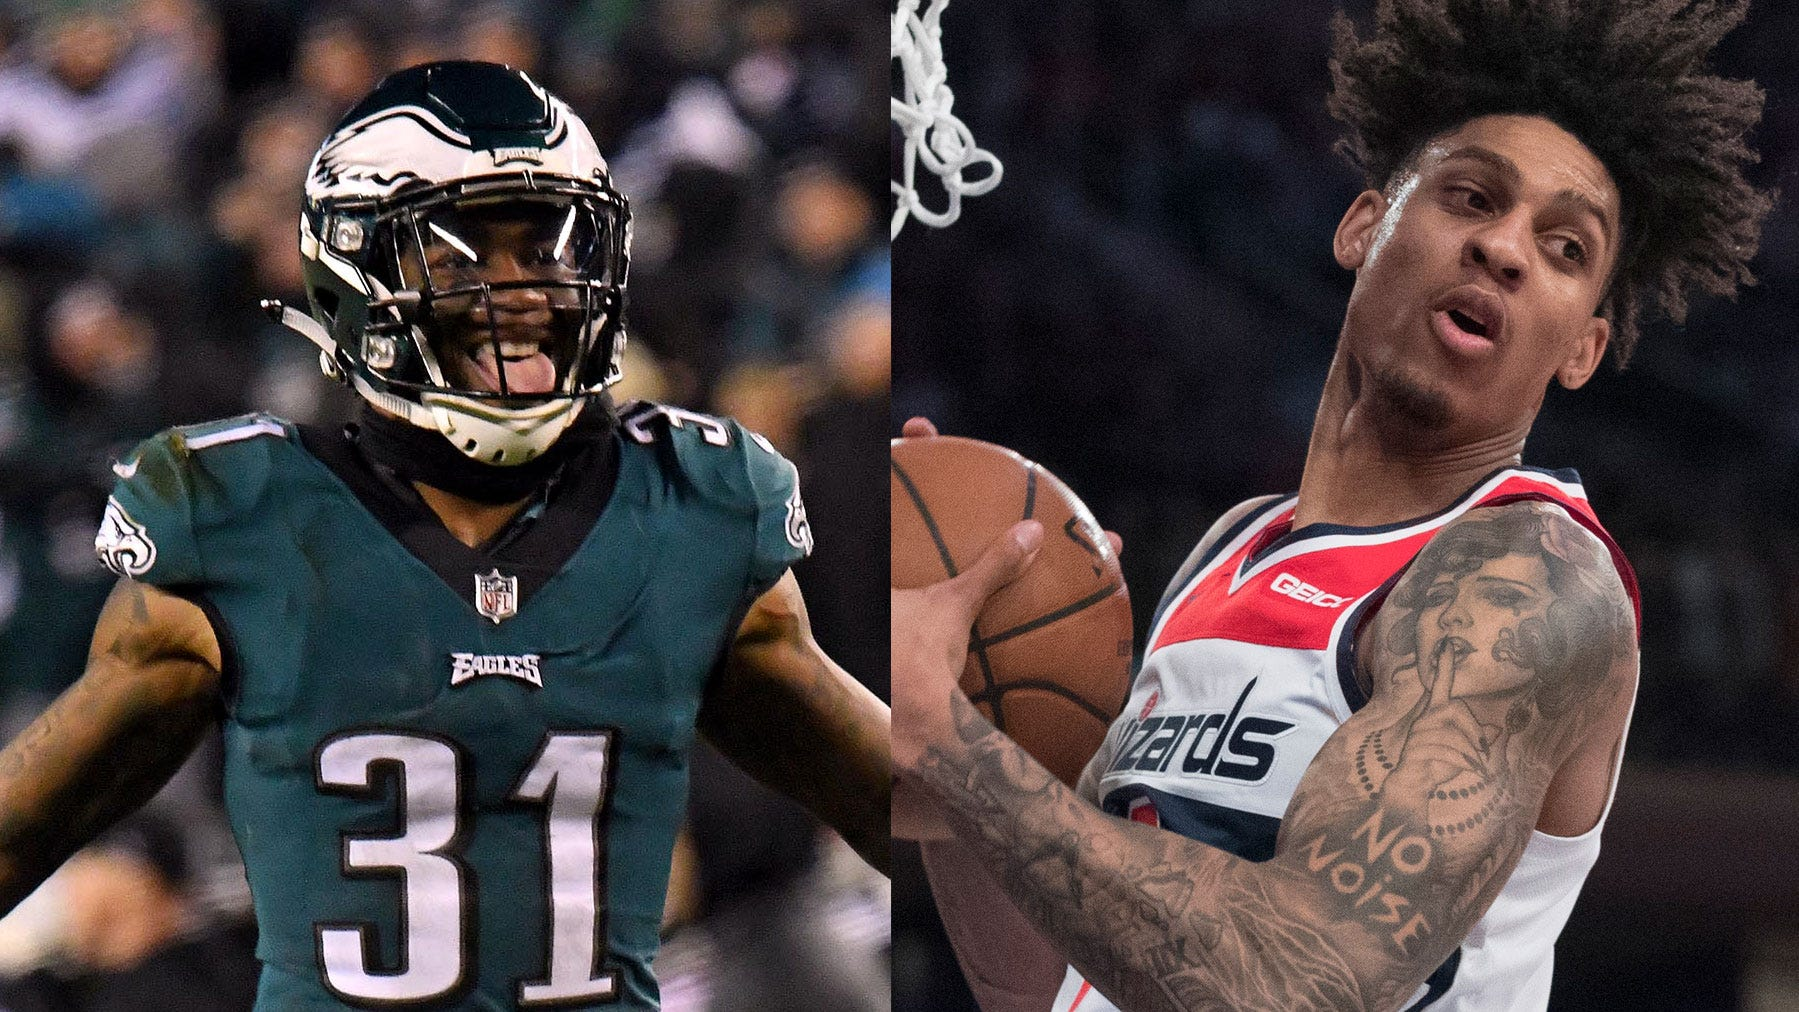 The NFL and NBA players were arrested and charged with disorderly conduct for fighting outside a Washington D.C. nightclub early Saturday.